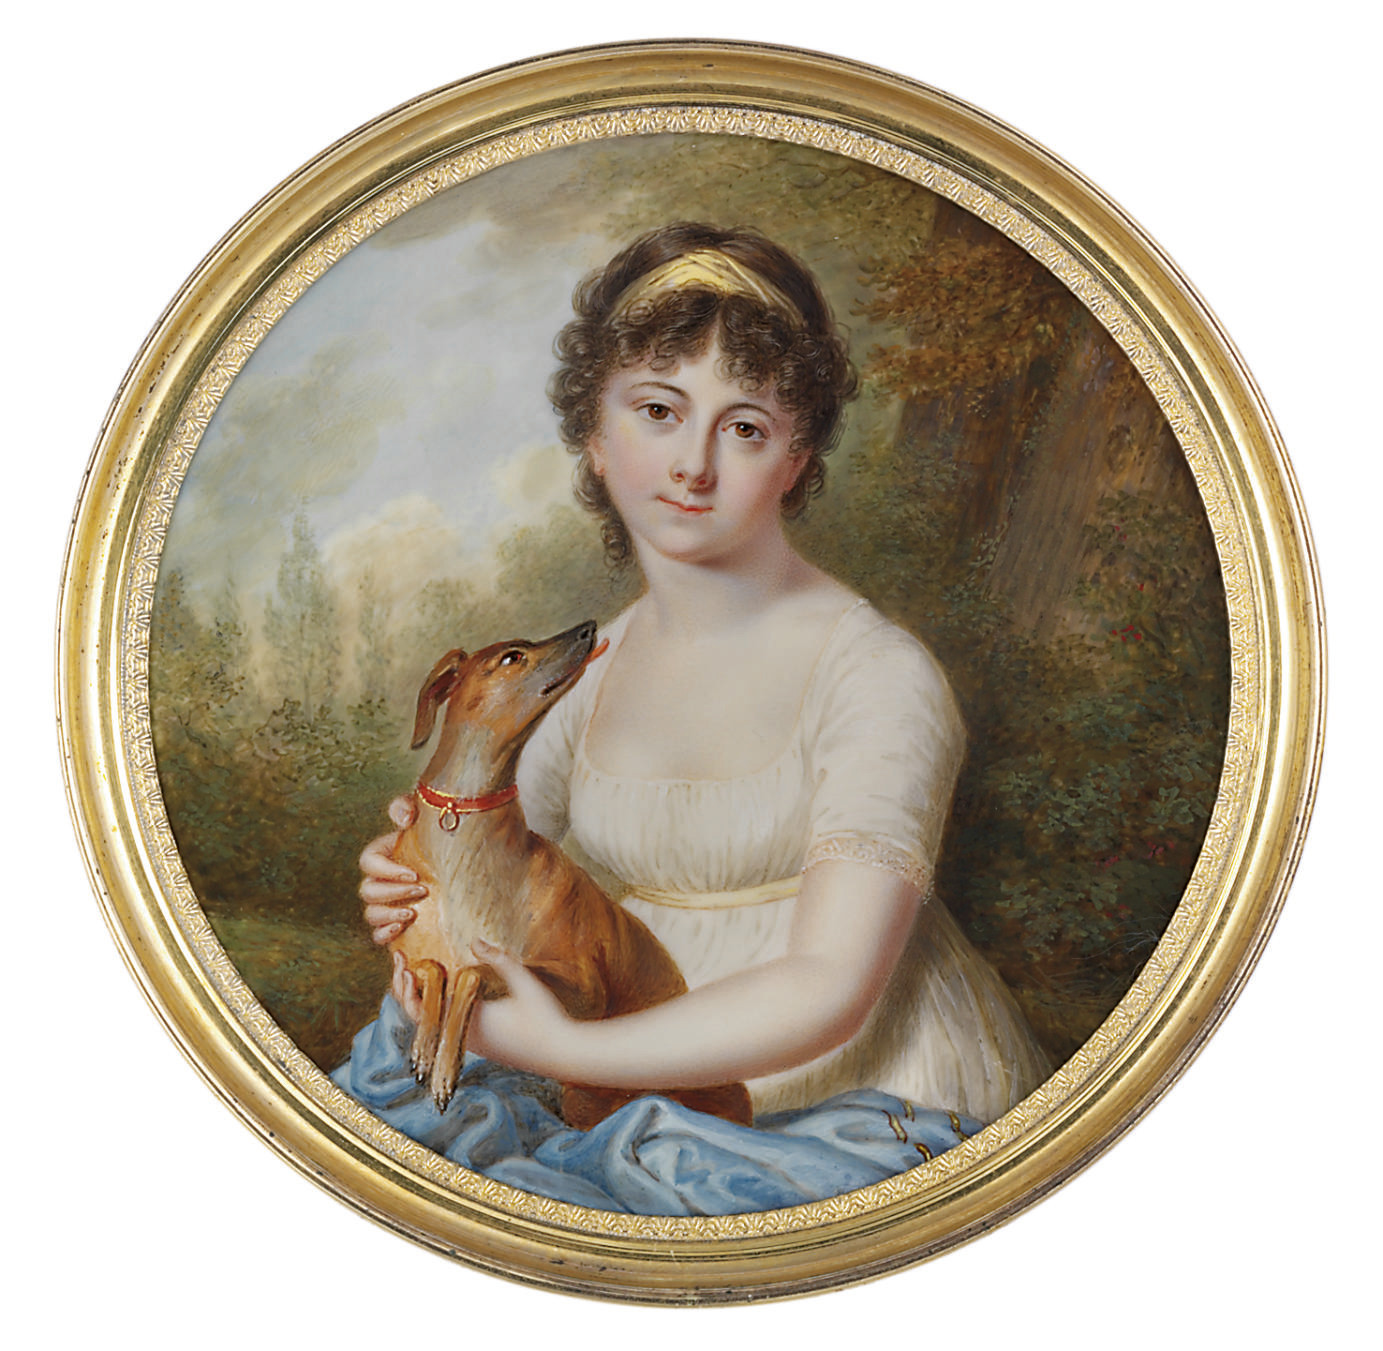 Pauline-Jeannette Glashoff (1780-1801), in white muslin day gown with lace-bordered sleeves and yellow sash, blue Cashmere shawl with yellow accents, yellow bandeau in her brown curling hair, holding a German Smooth Haired Pinscher in red collar; landscape background